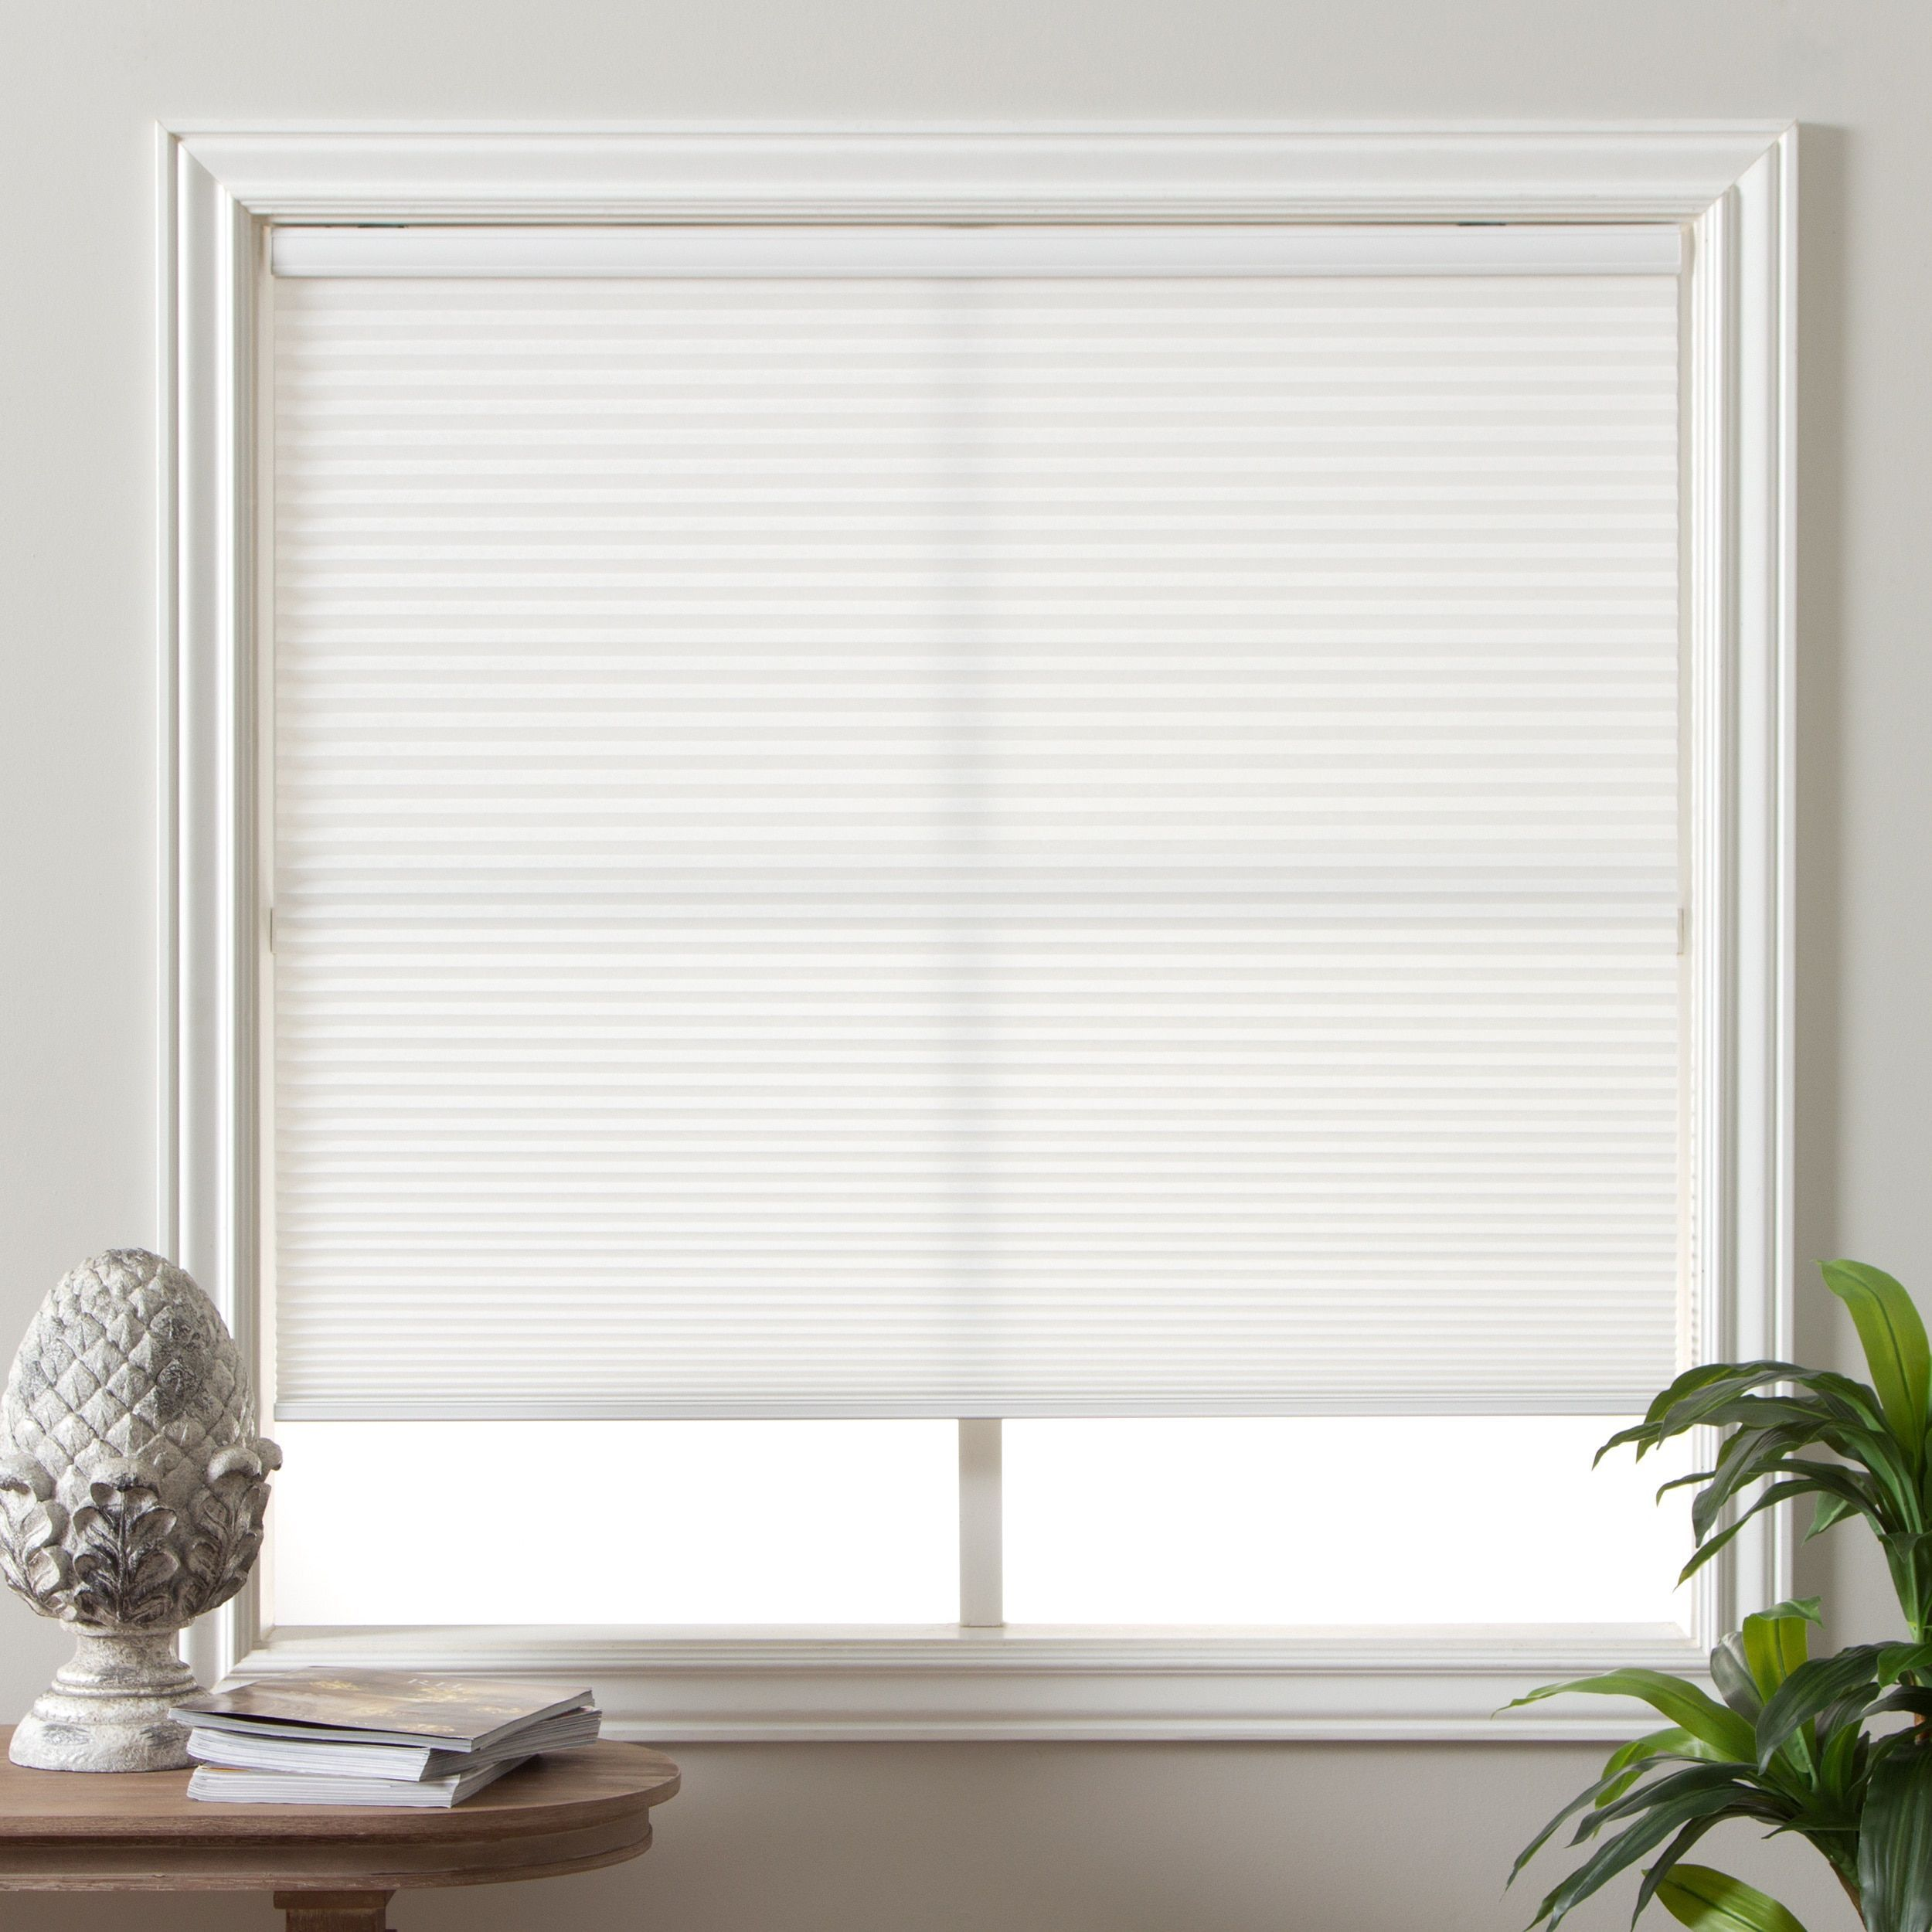 Arlo blinds honeycomb cell lightfiltering pure cellular shades